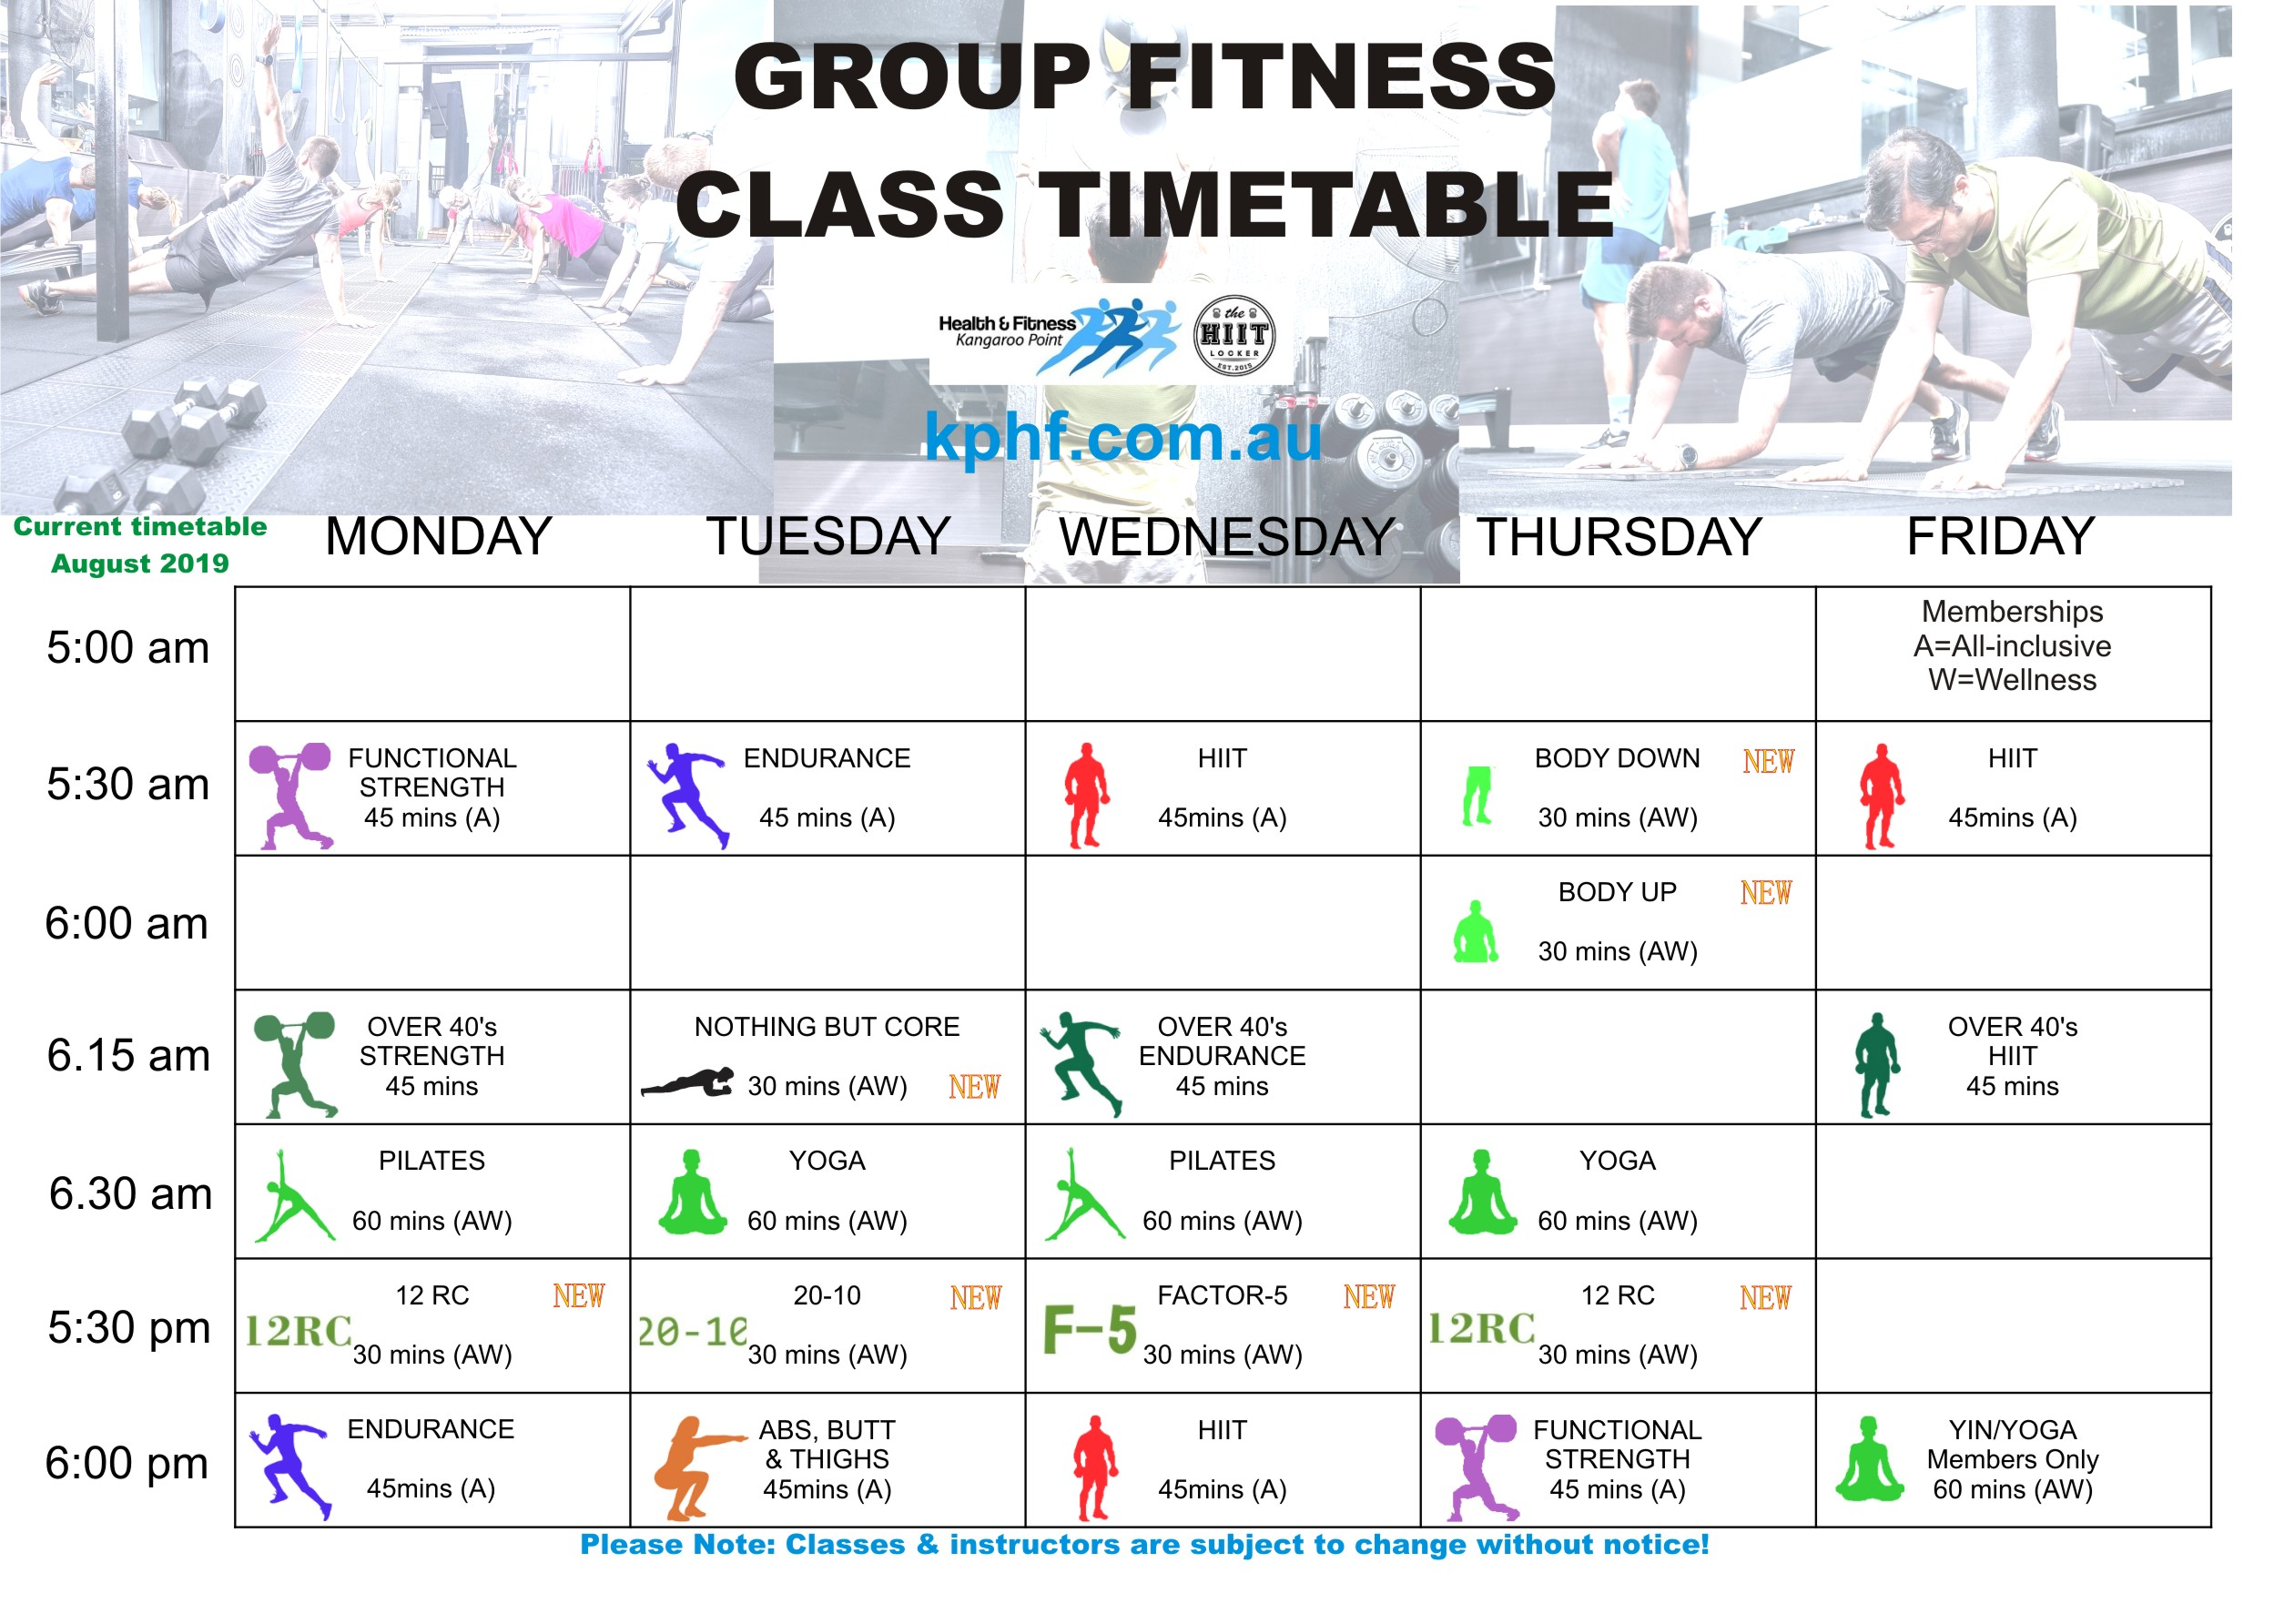 Group Fitness & Wellness Class Timetables - Updated August 2019.